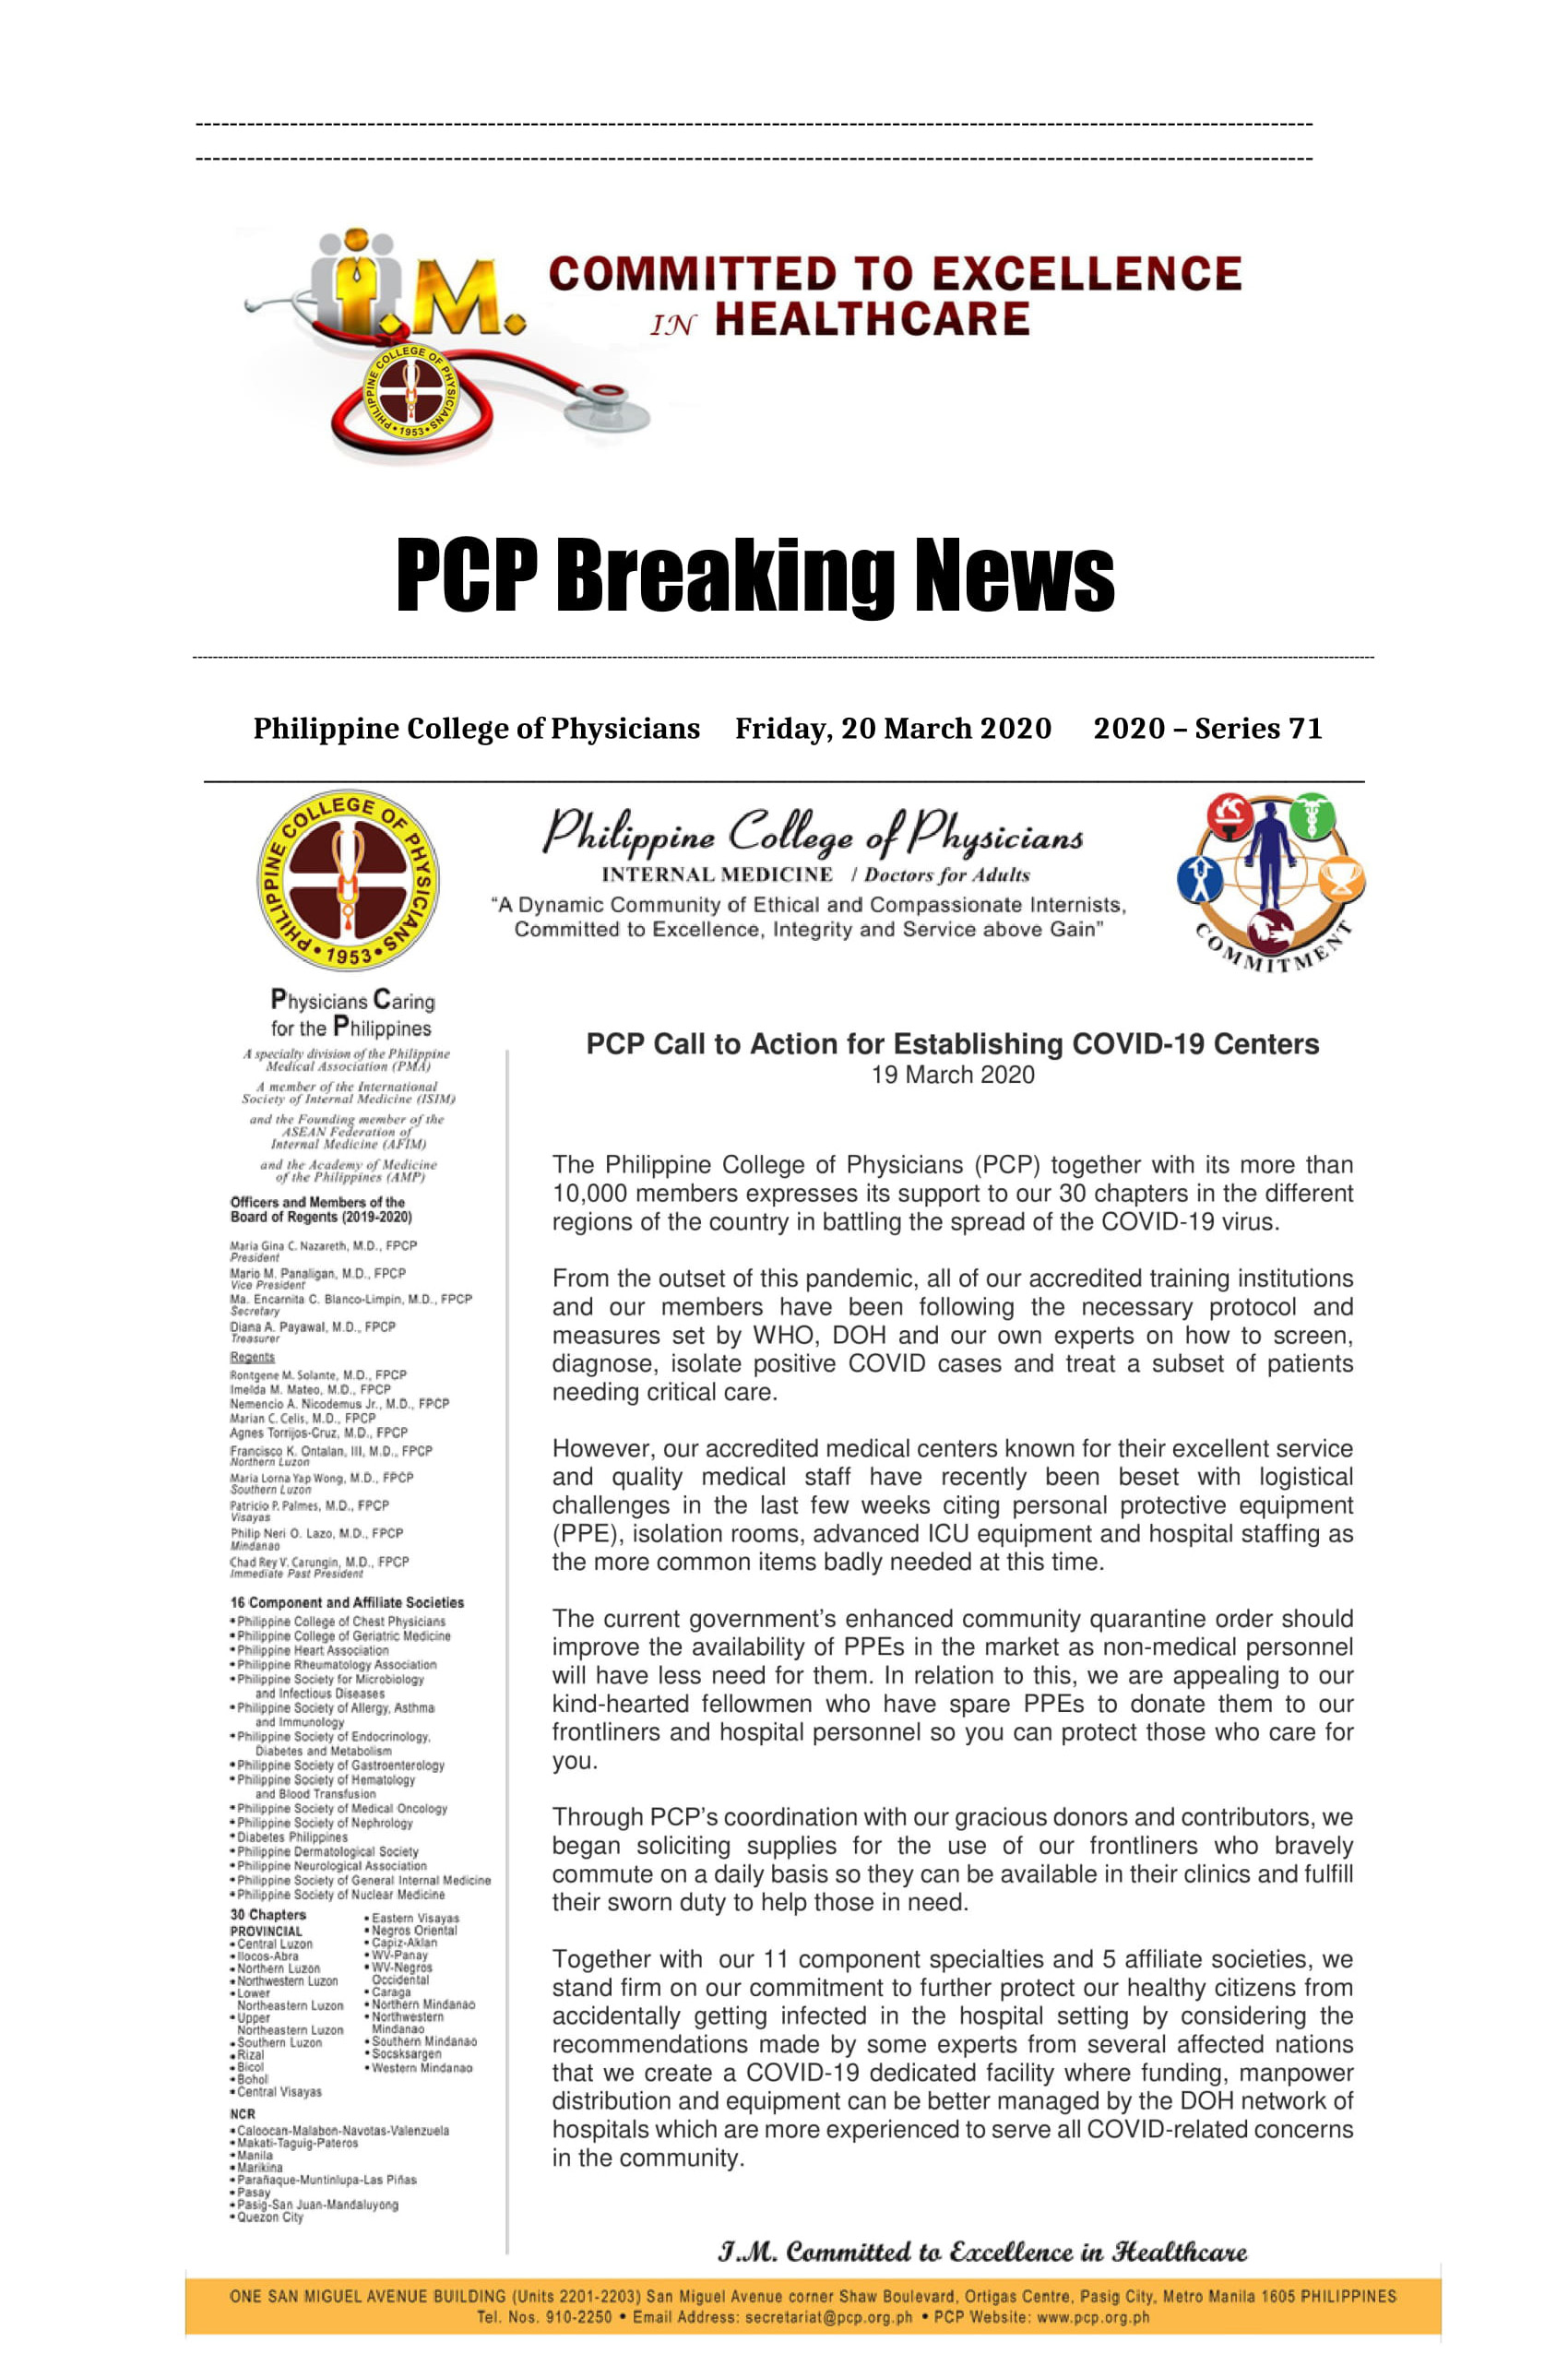 PCP Breaking News series 71 1